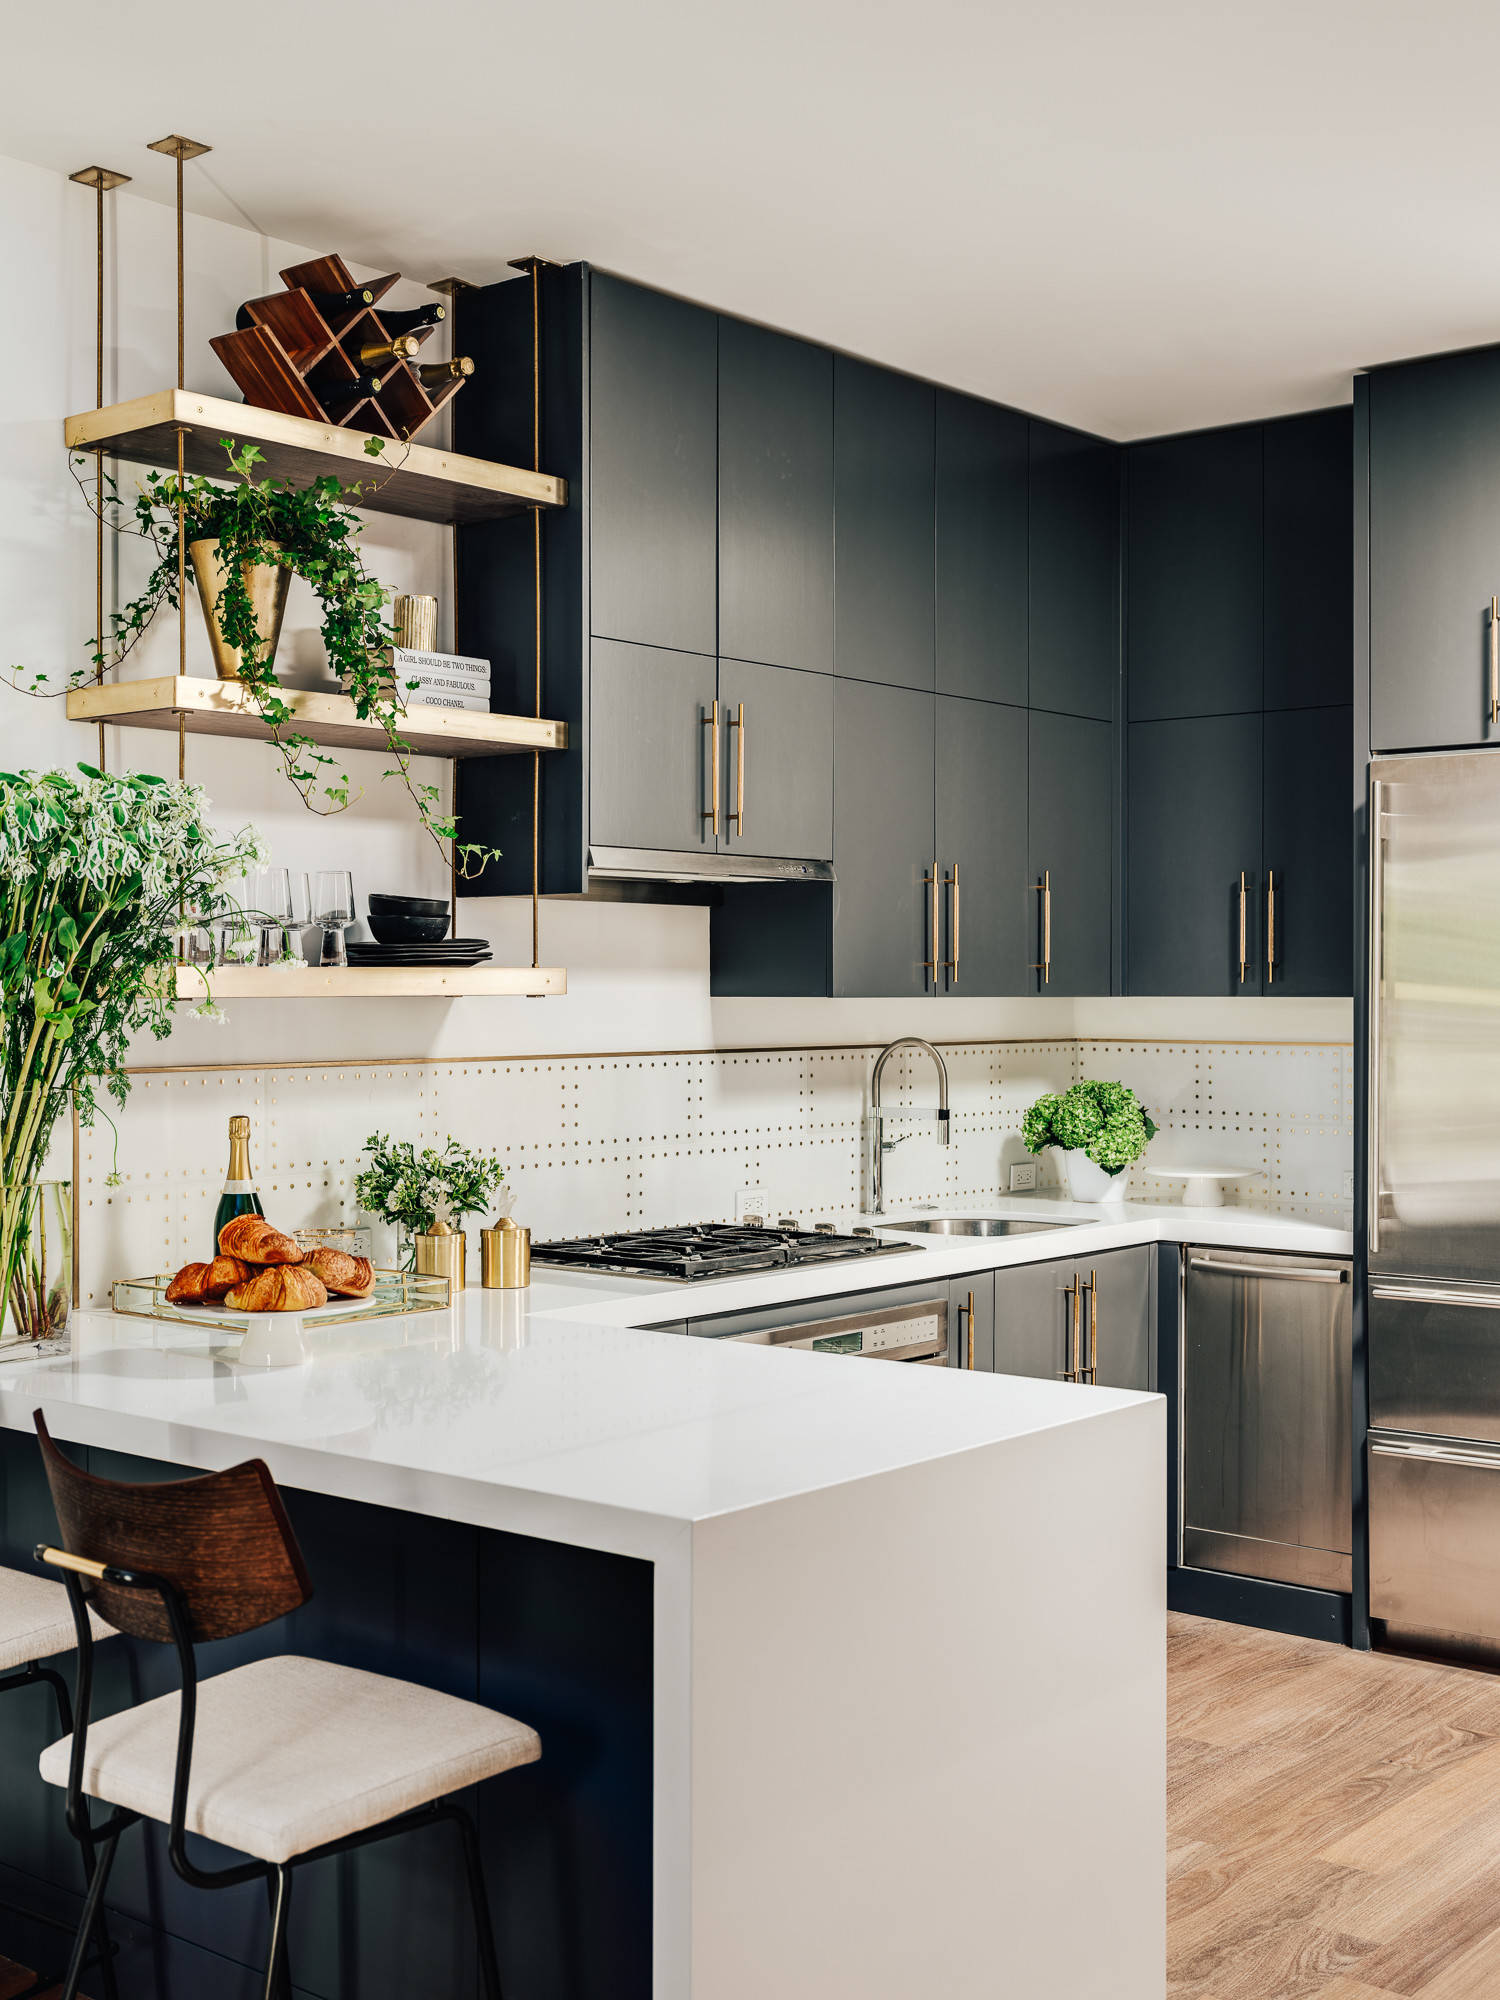 75 Beautiful Kitchen With A Peninsula Pictures Ideas May 2021 Houzz